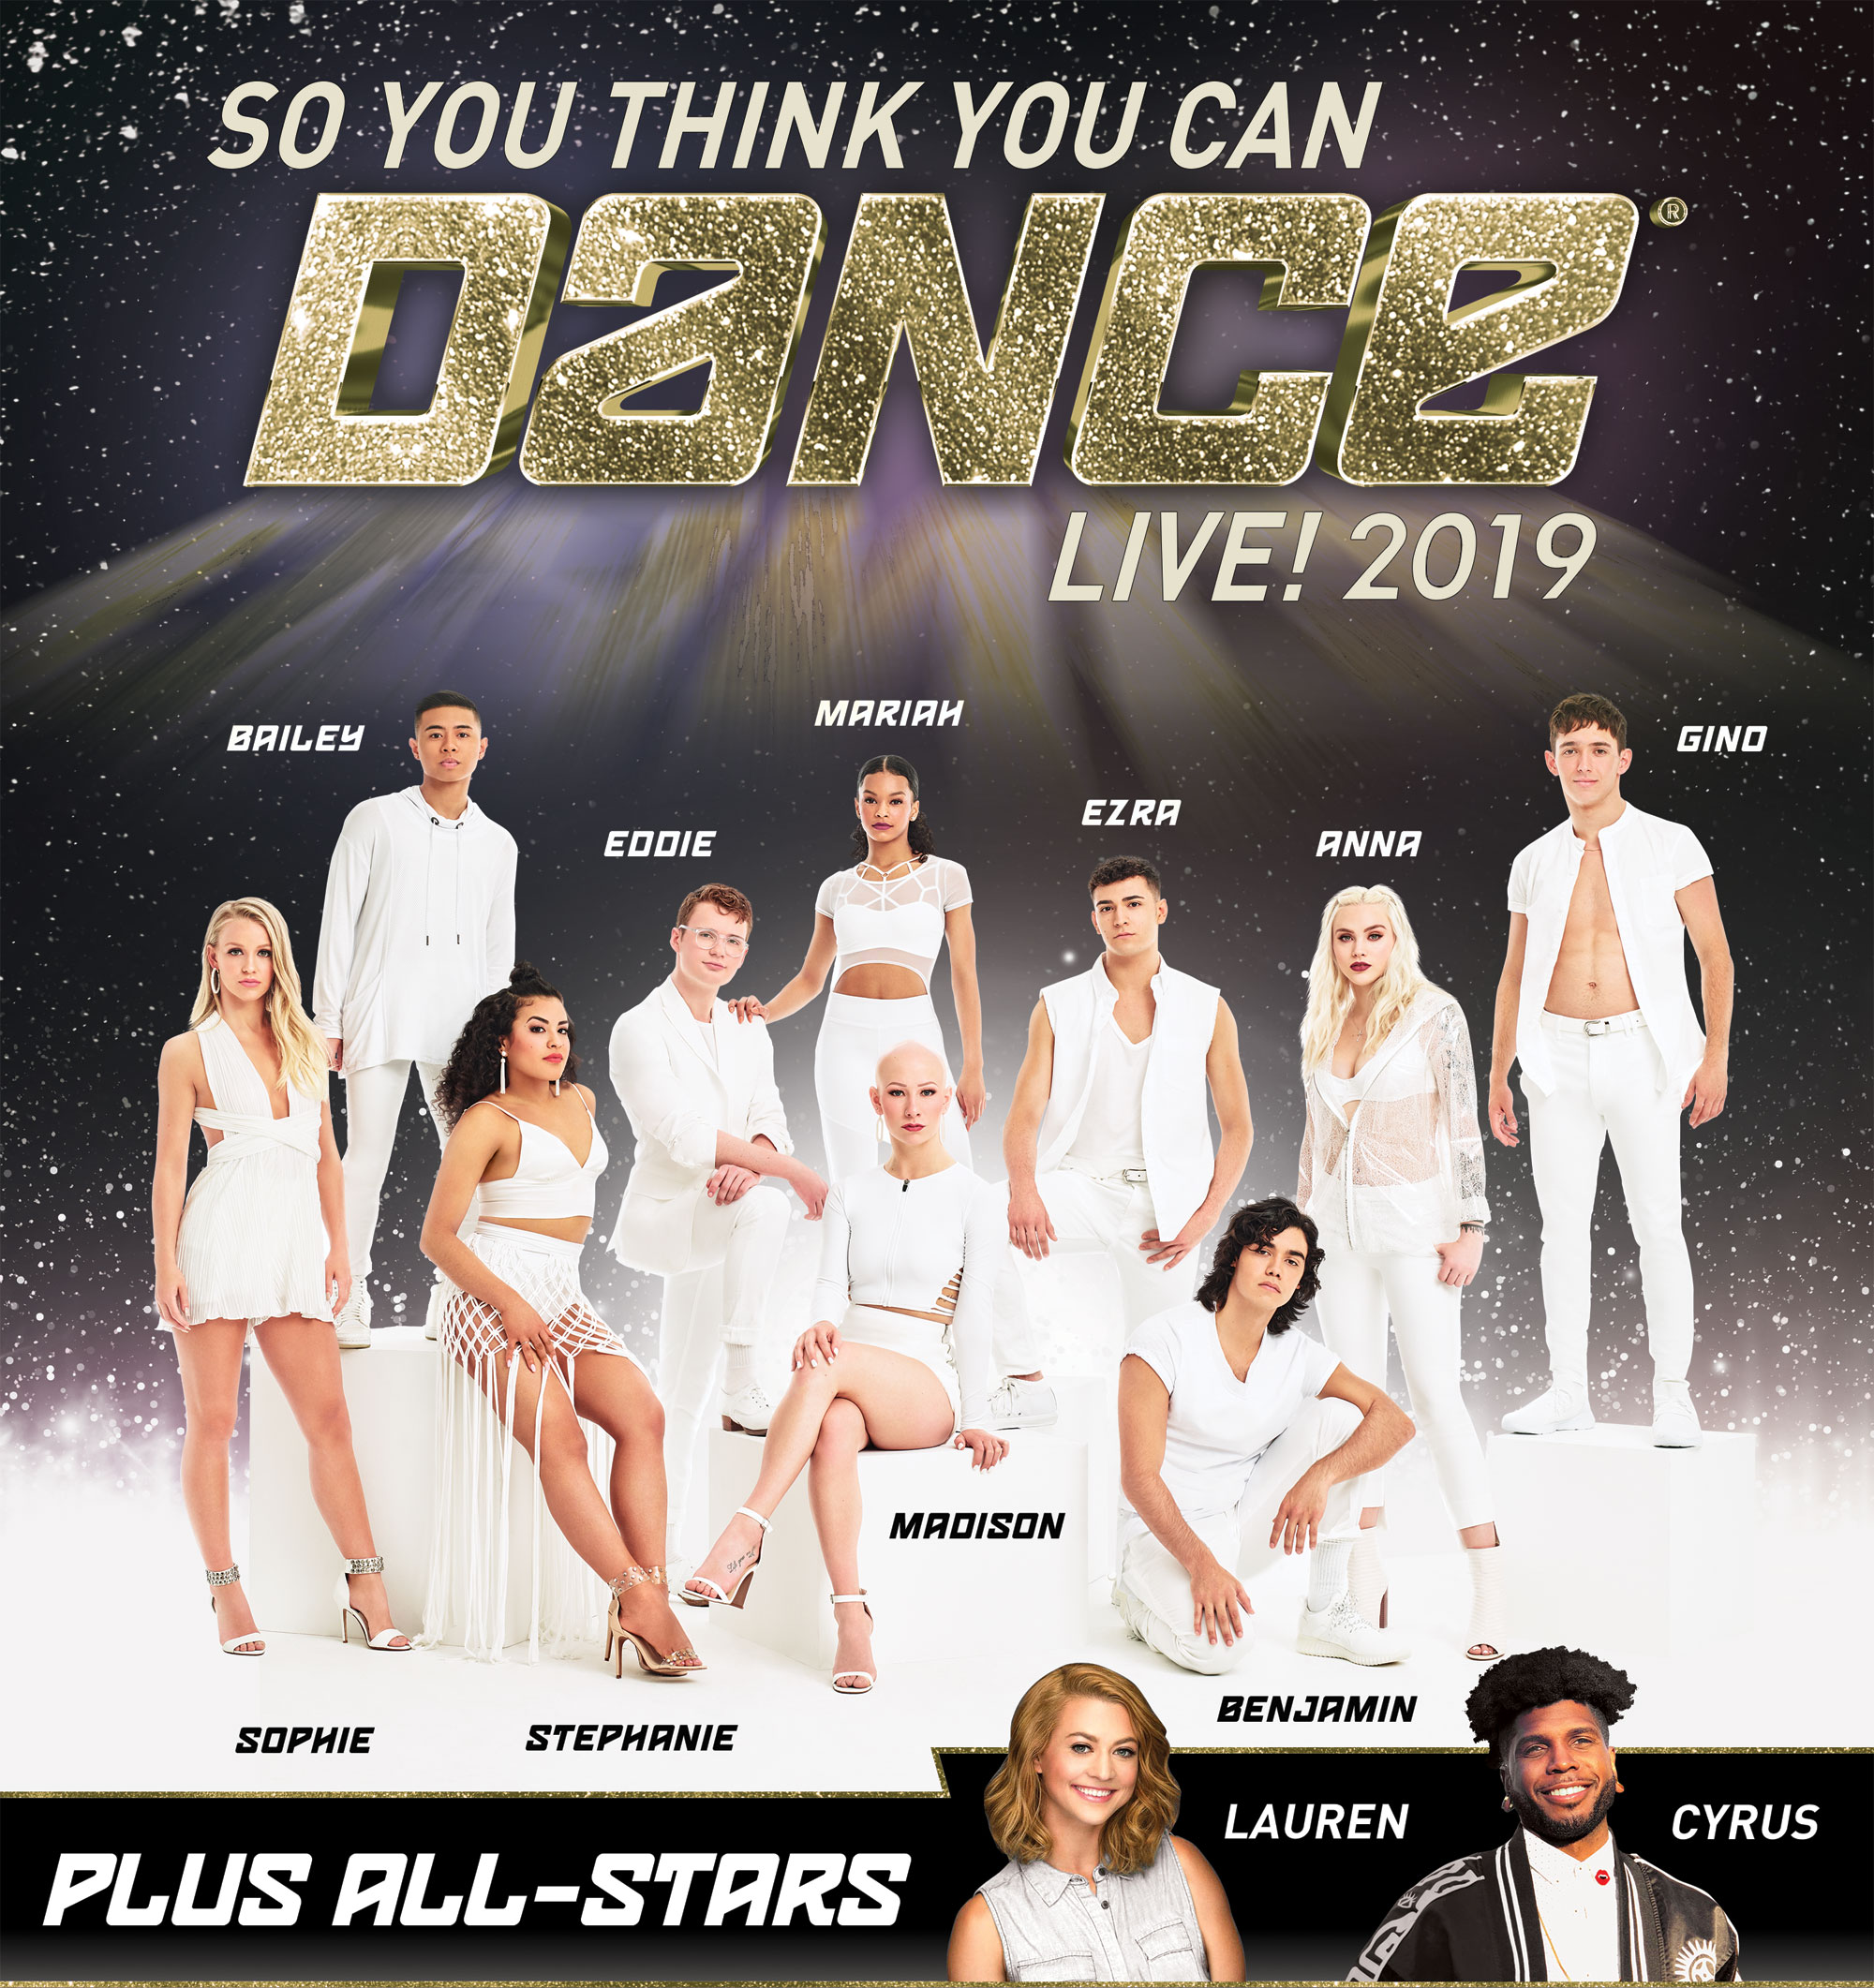 Dance Live Tour 2019! - So You Think You Can Dance